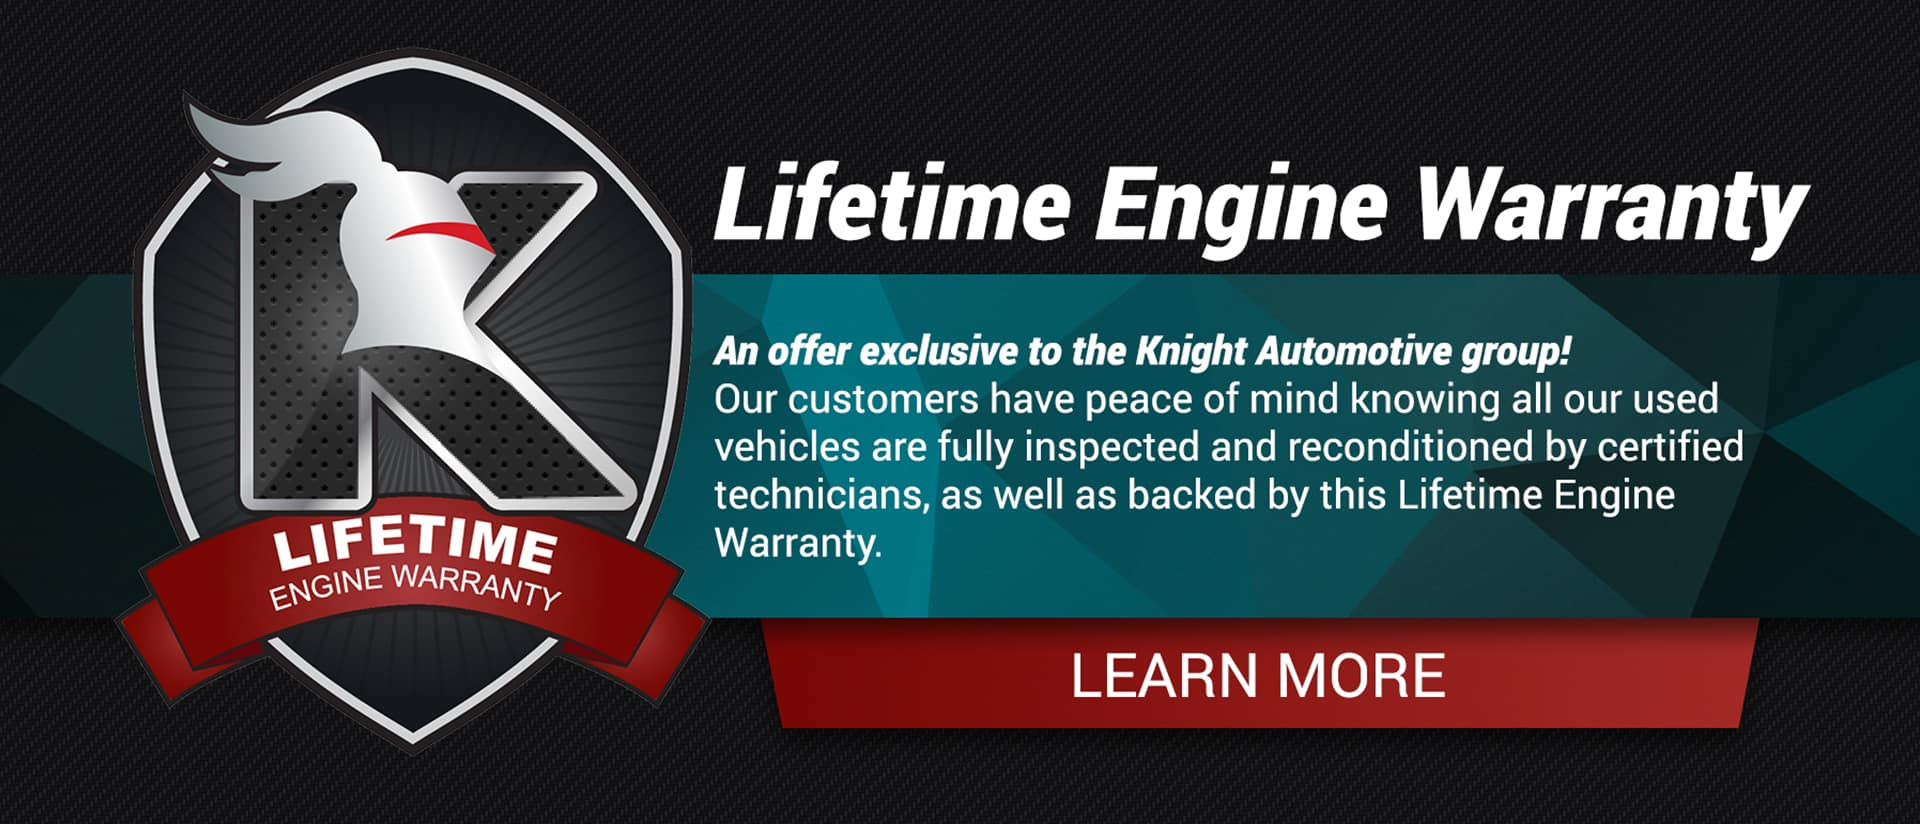 Lifetime Engine Warranty